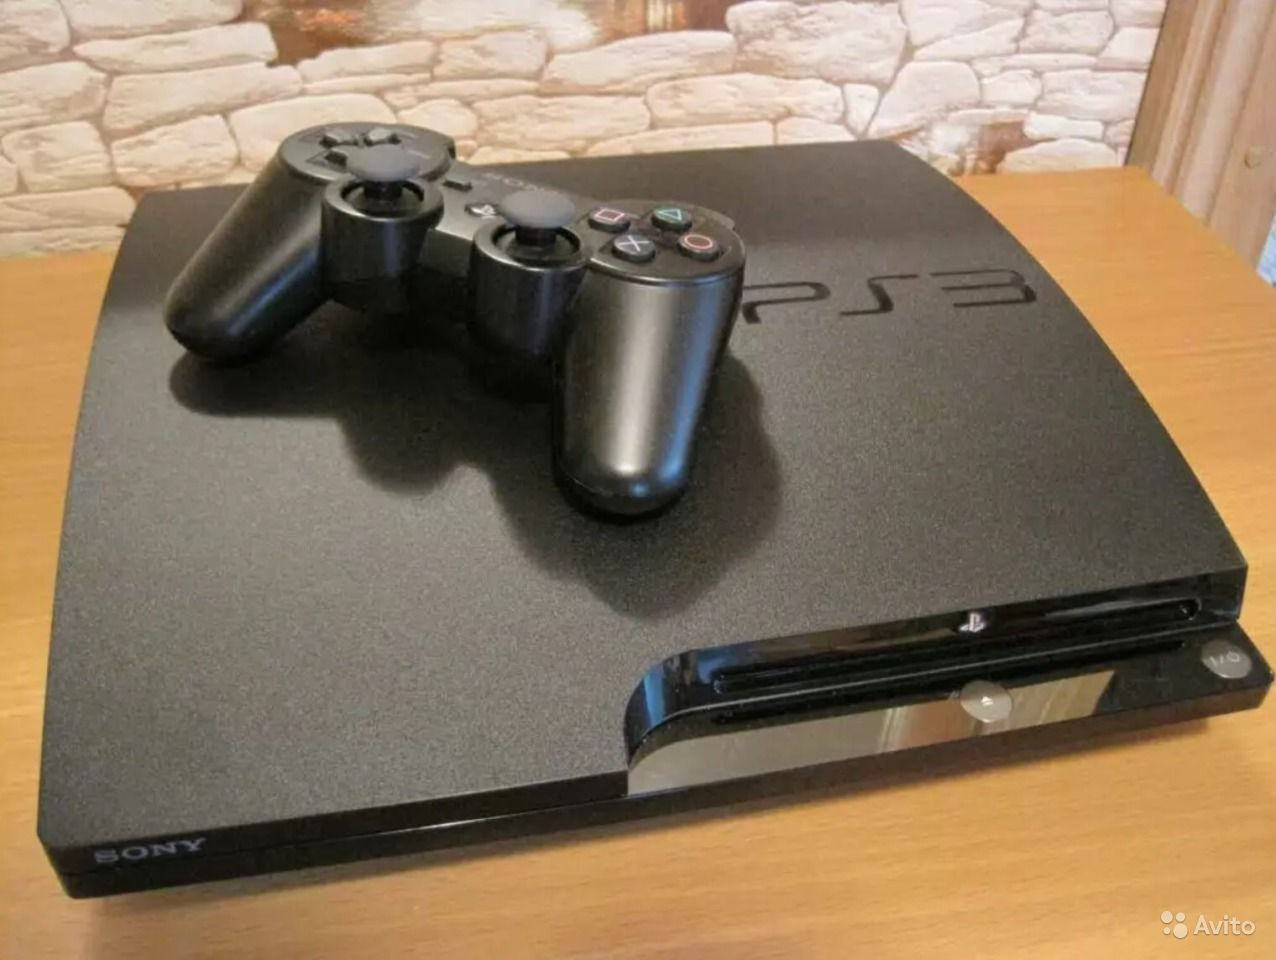 Photos of the ps3 M: SSX - Playstation 3: Video Games